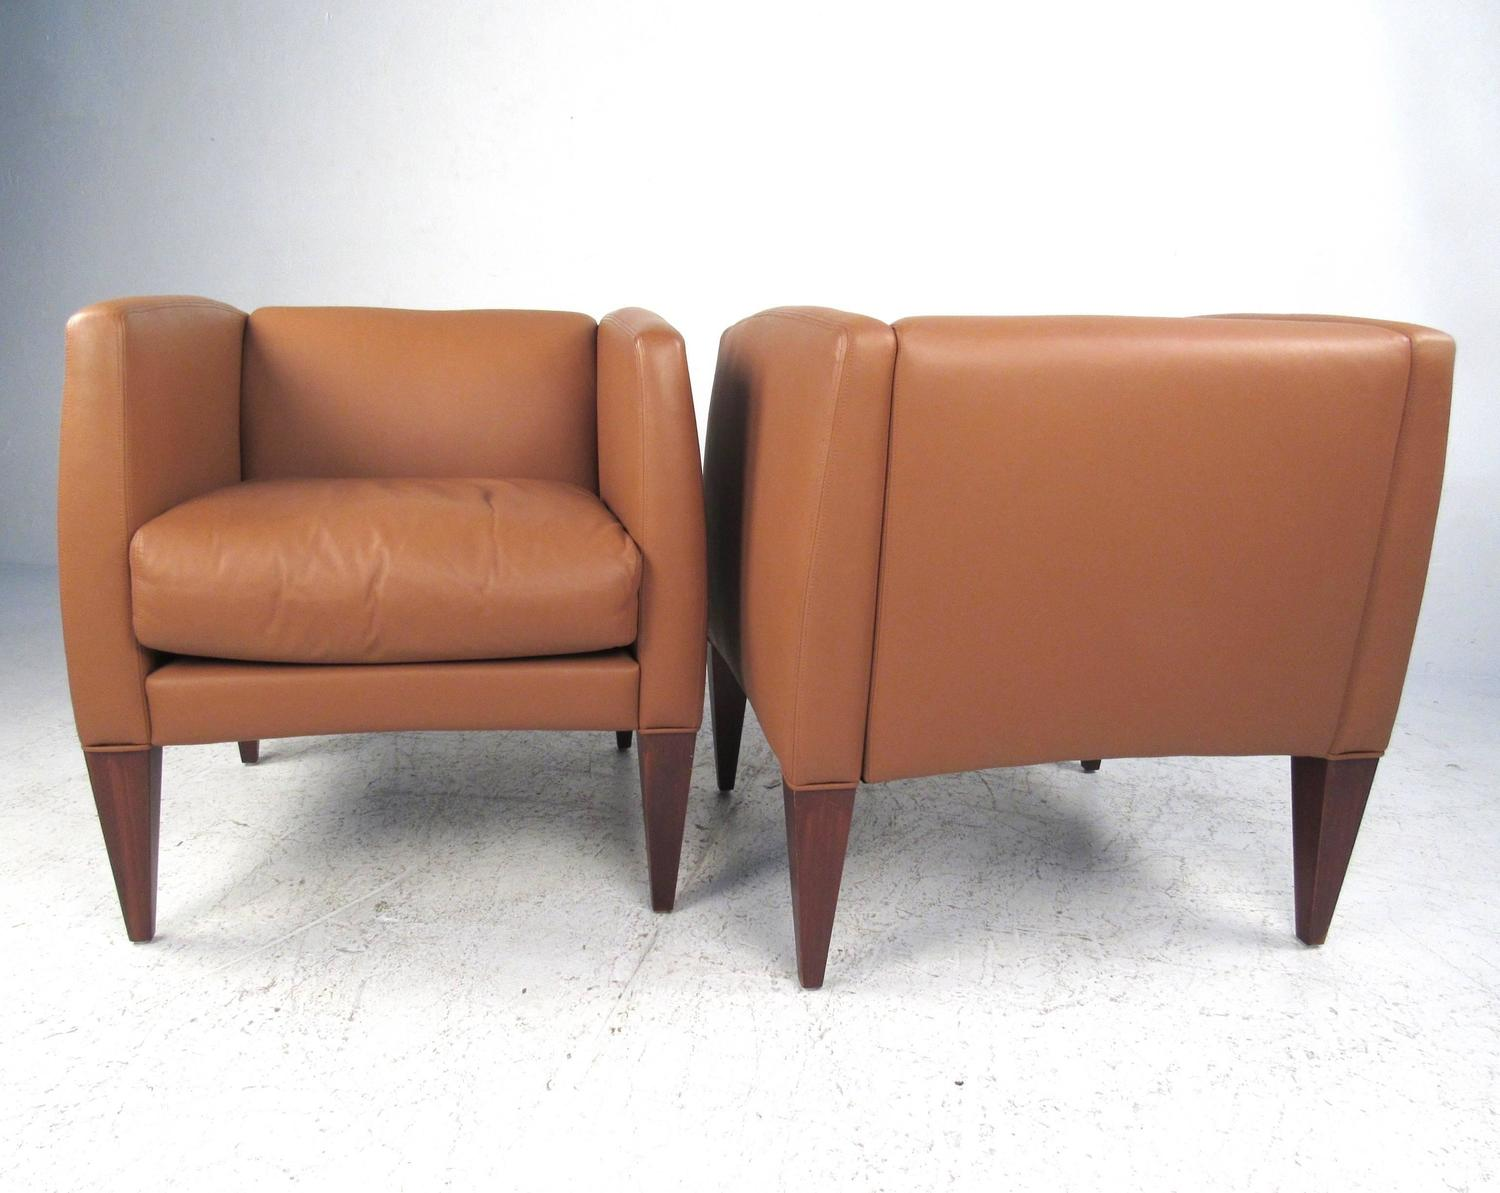 Pair Of Contemporary Modern Italian Leather Club Chairs For Sale At 1stdibs